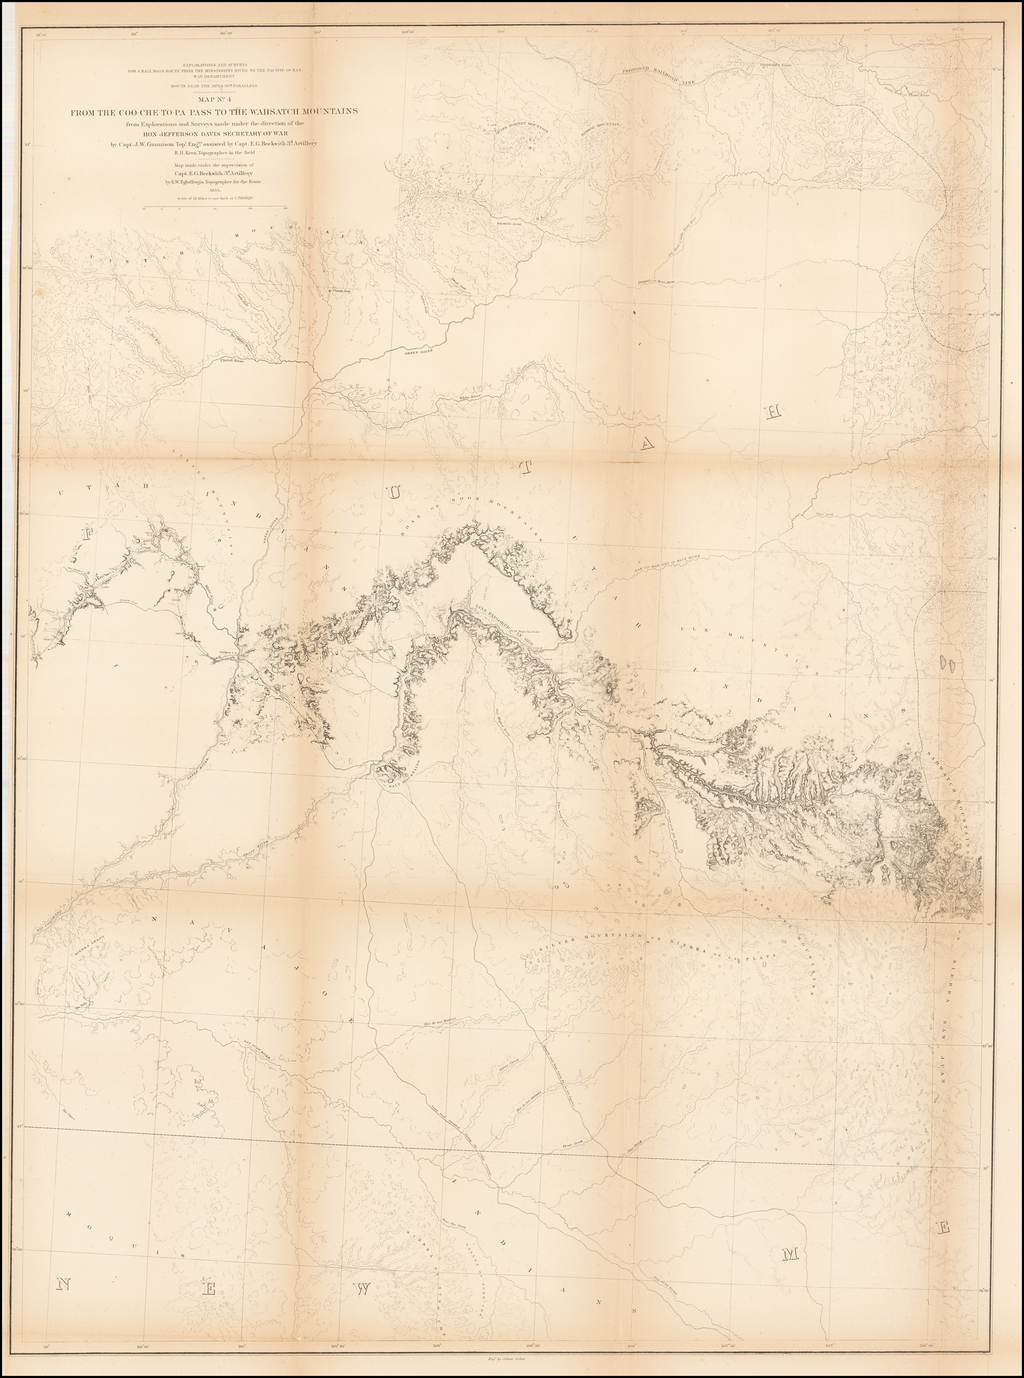 Map No.4. From the Coo-Che-To-Pa Pass to the Wahsatch Mountains . . . by Capt. J.W. Gunnison . . . 1855 By U.S. Pacific RR Survey